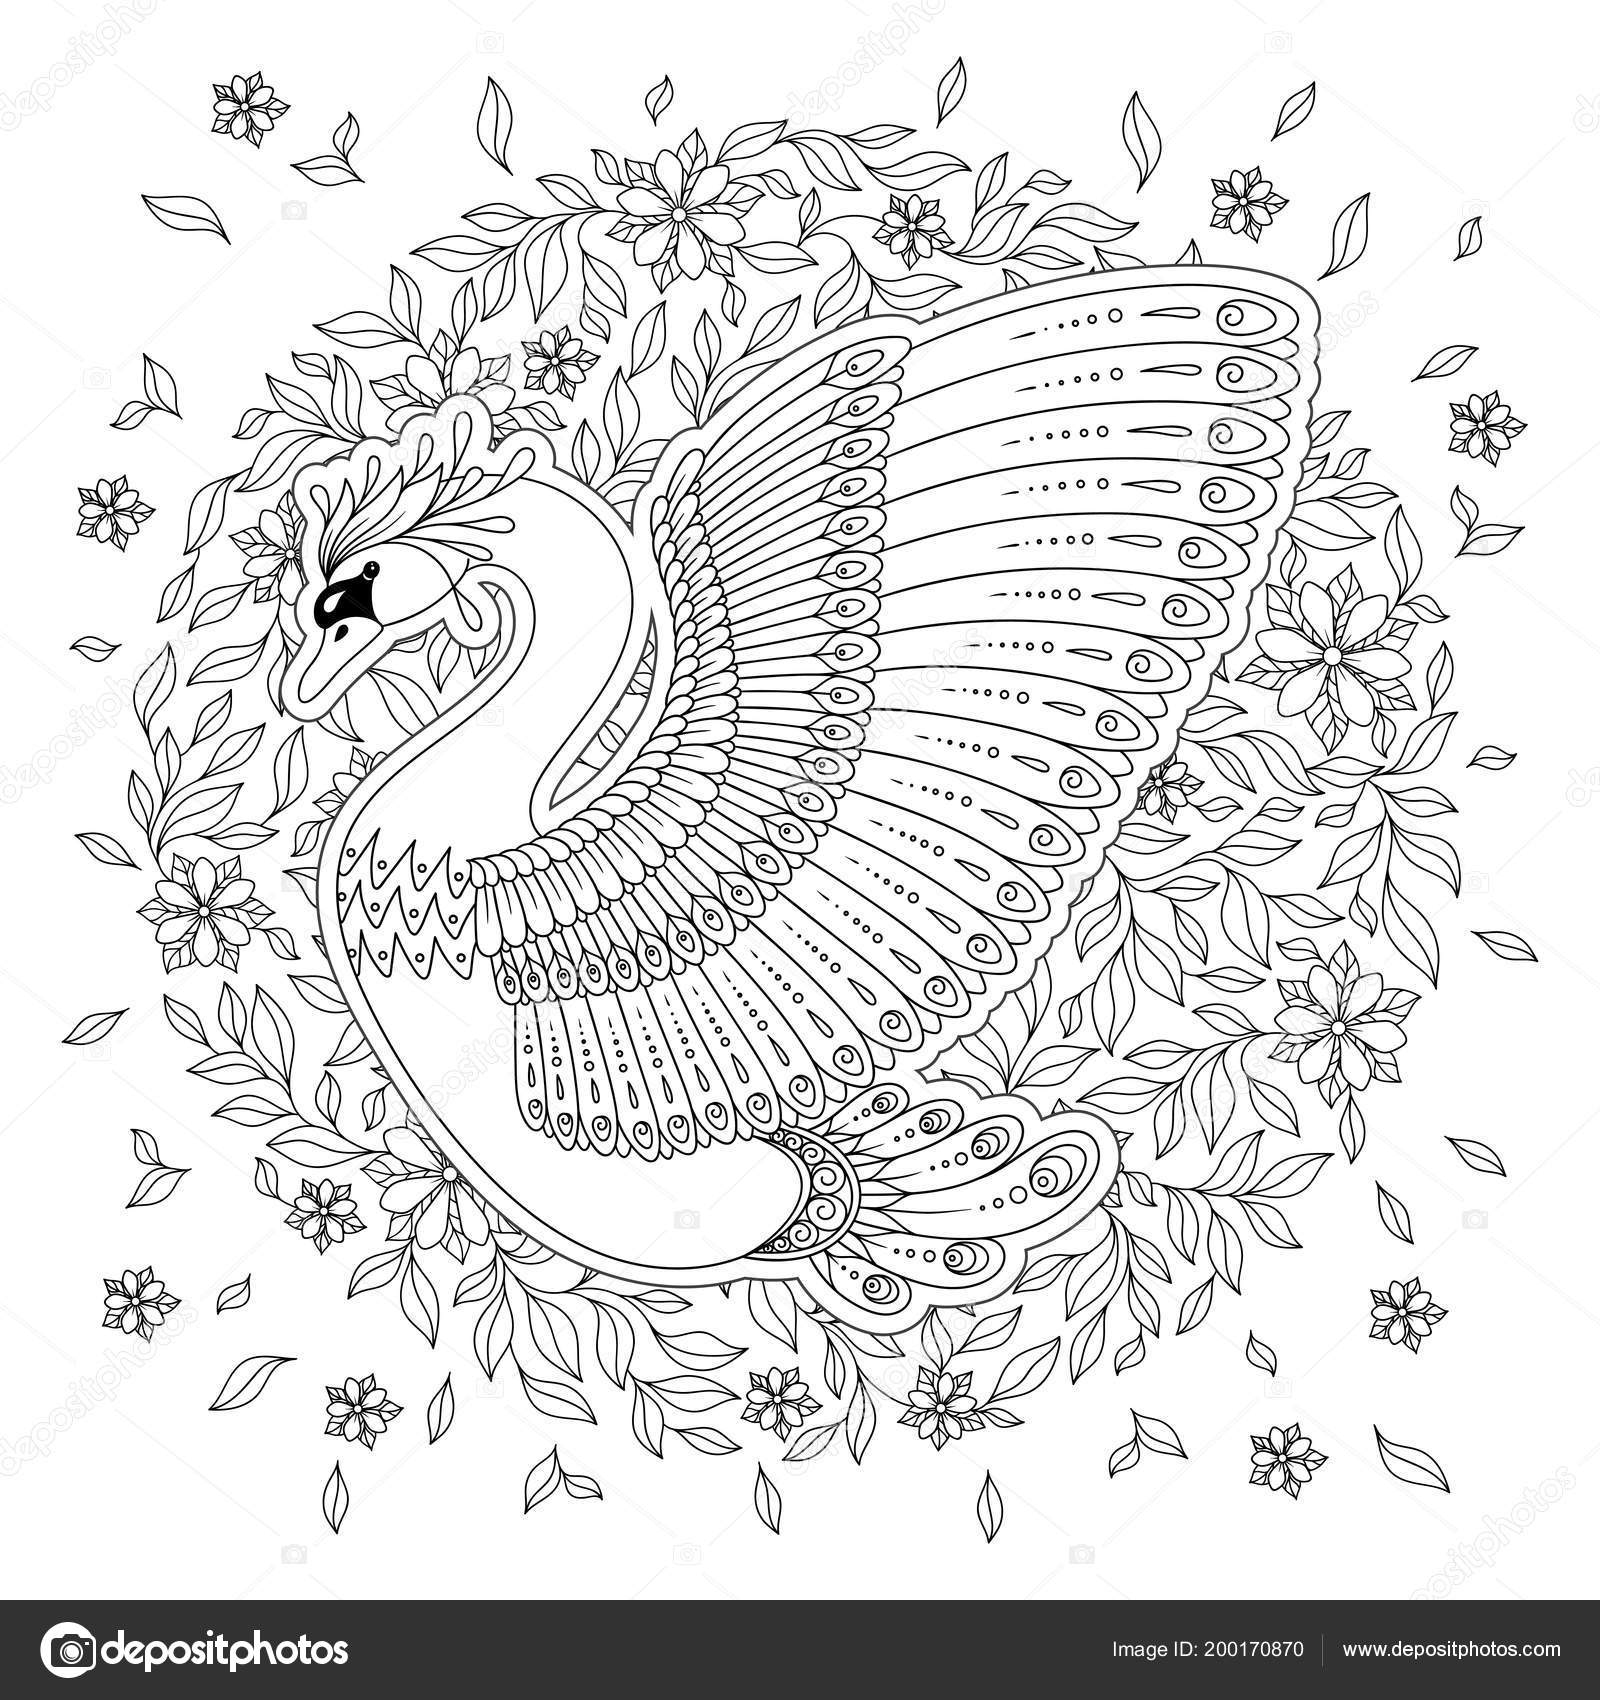 Hand Drawing Artistic Swan Adult Coloring Pages Doodle